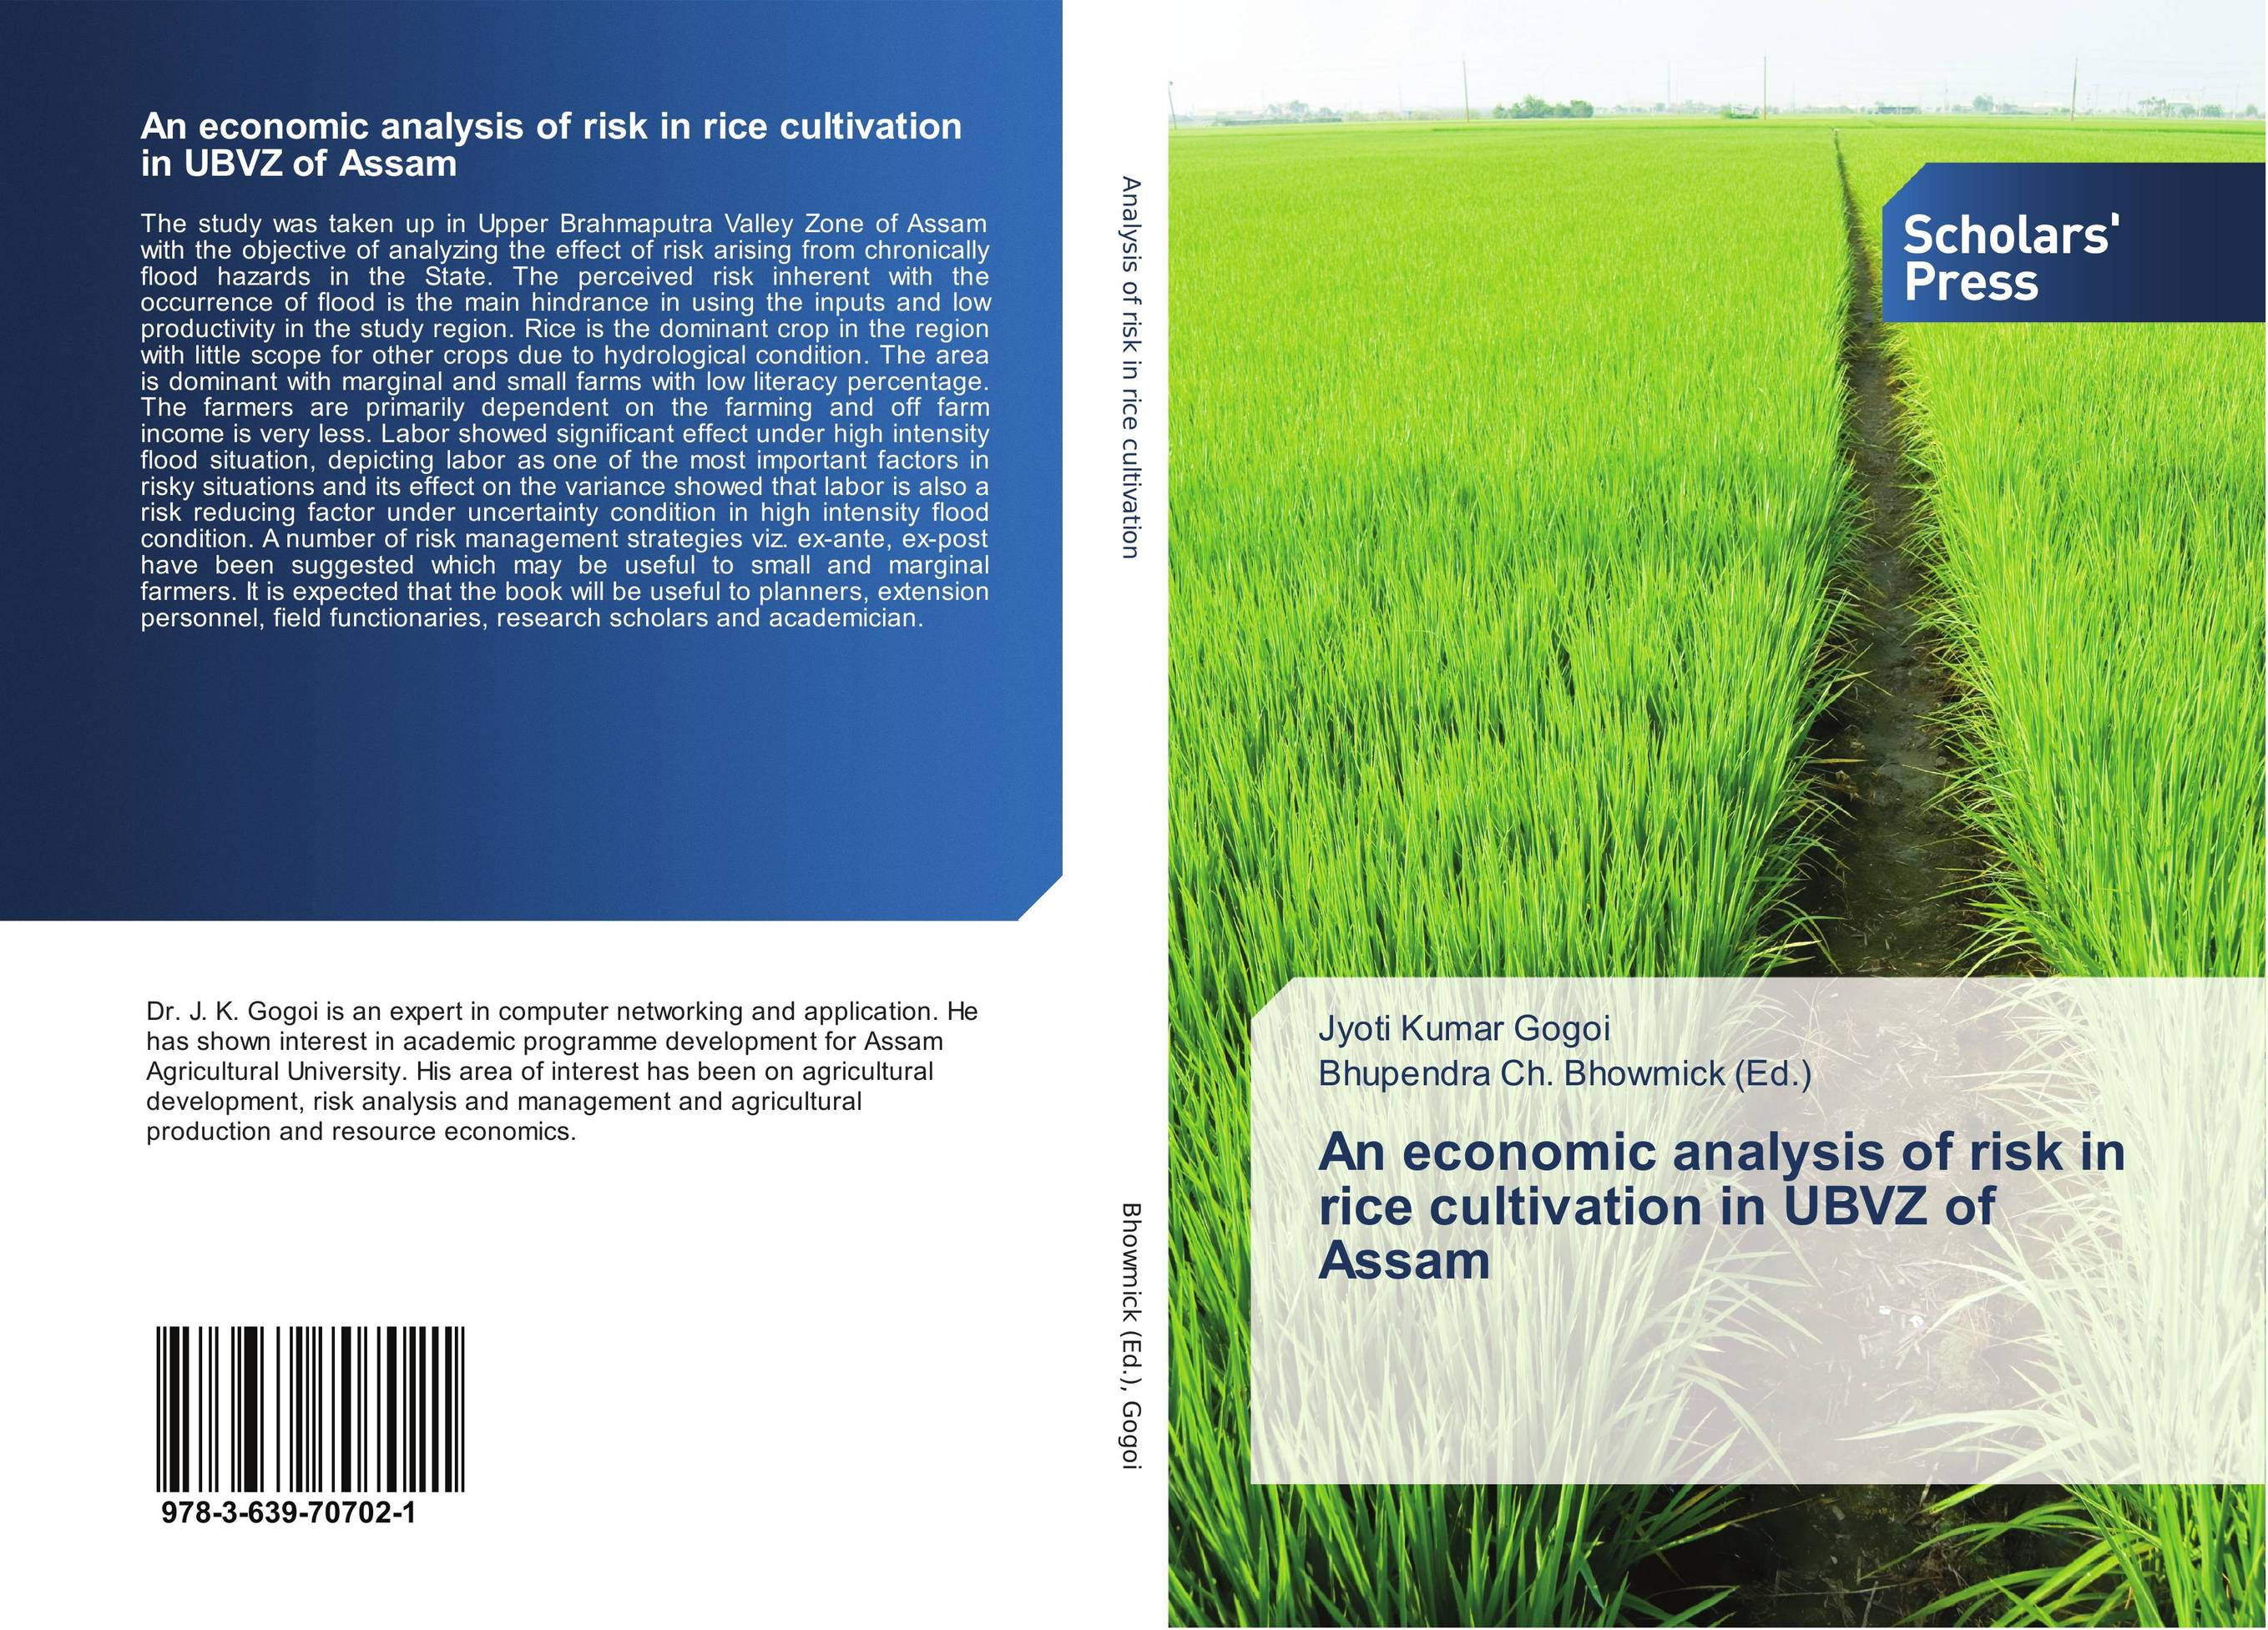 An economic analysis of risk in rice cultivation in UBVZ of Assam зажимы для бумаги 25 мм 12шт sponsor